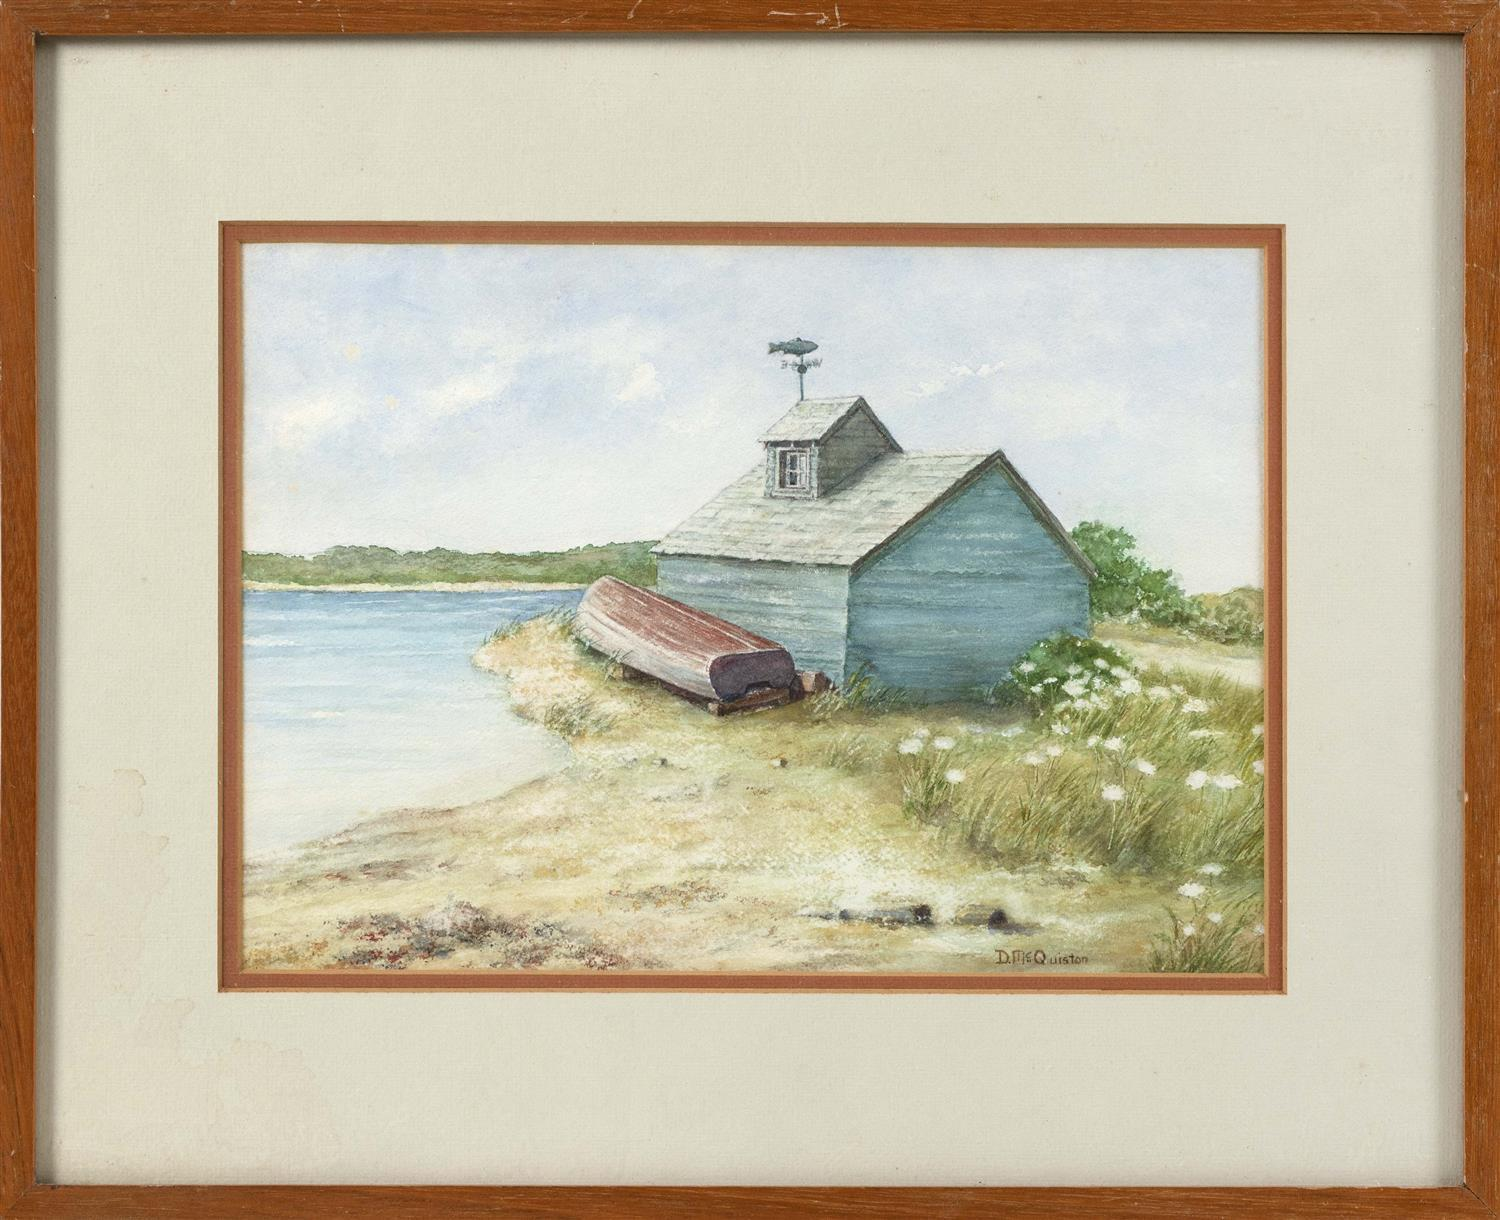 "D. MCQUISTON, Cape Cod, Contemporary, Boathouse, Bass River., Watercolor on paper, 10"" x 14"" sight. Framed 17"" x 21""."